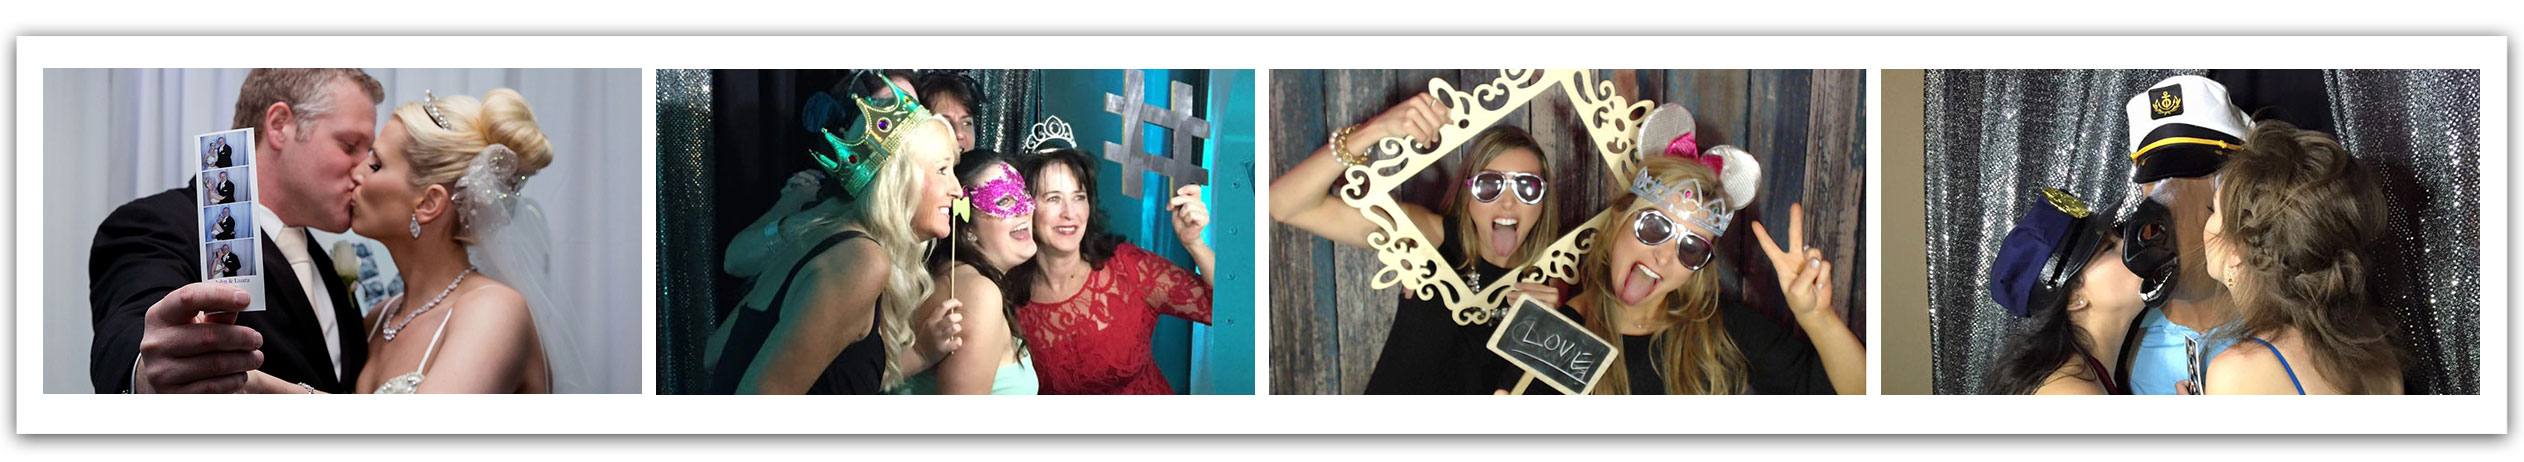 photo stations, photo booth, photo strip